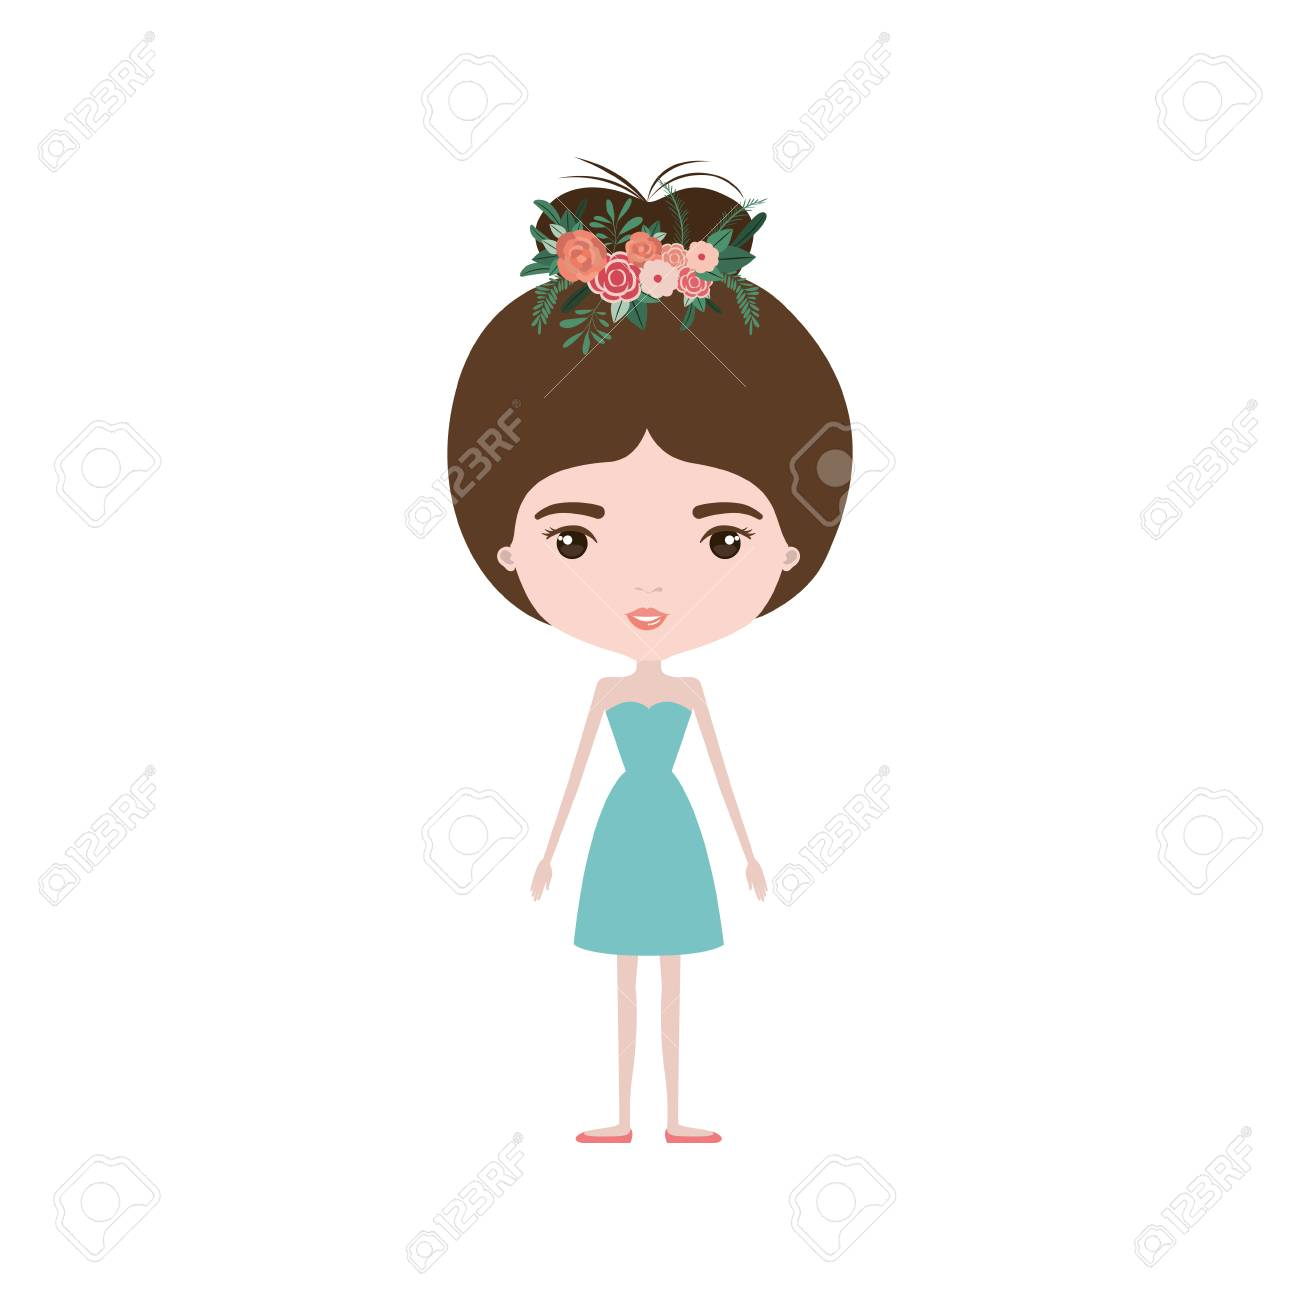 Colorful caricature skinny woman in dress with bun collected colorful caricature skinny woman in dress with bun collected hairstyle and flower crown accesory vector illustration izmirmasajfo